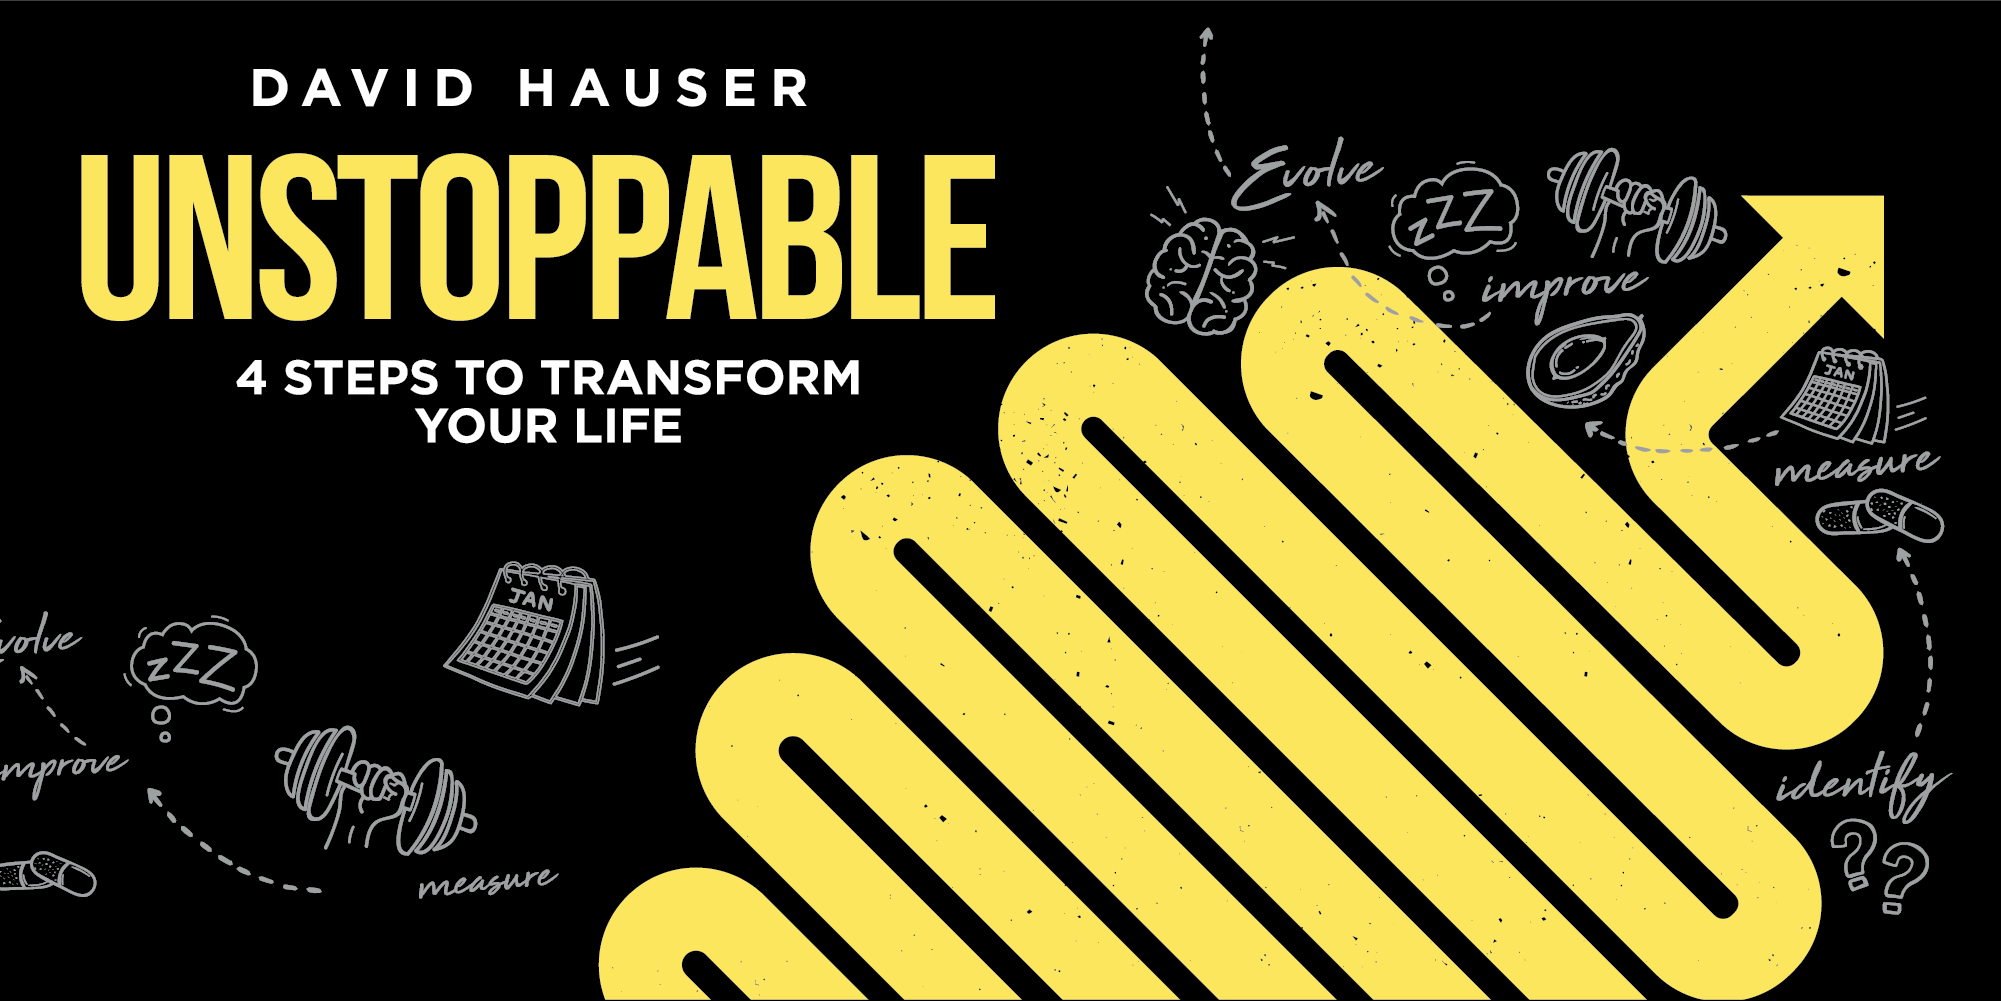 Preview of Chargify Founder David Hauser's new book, Unstoppable